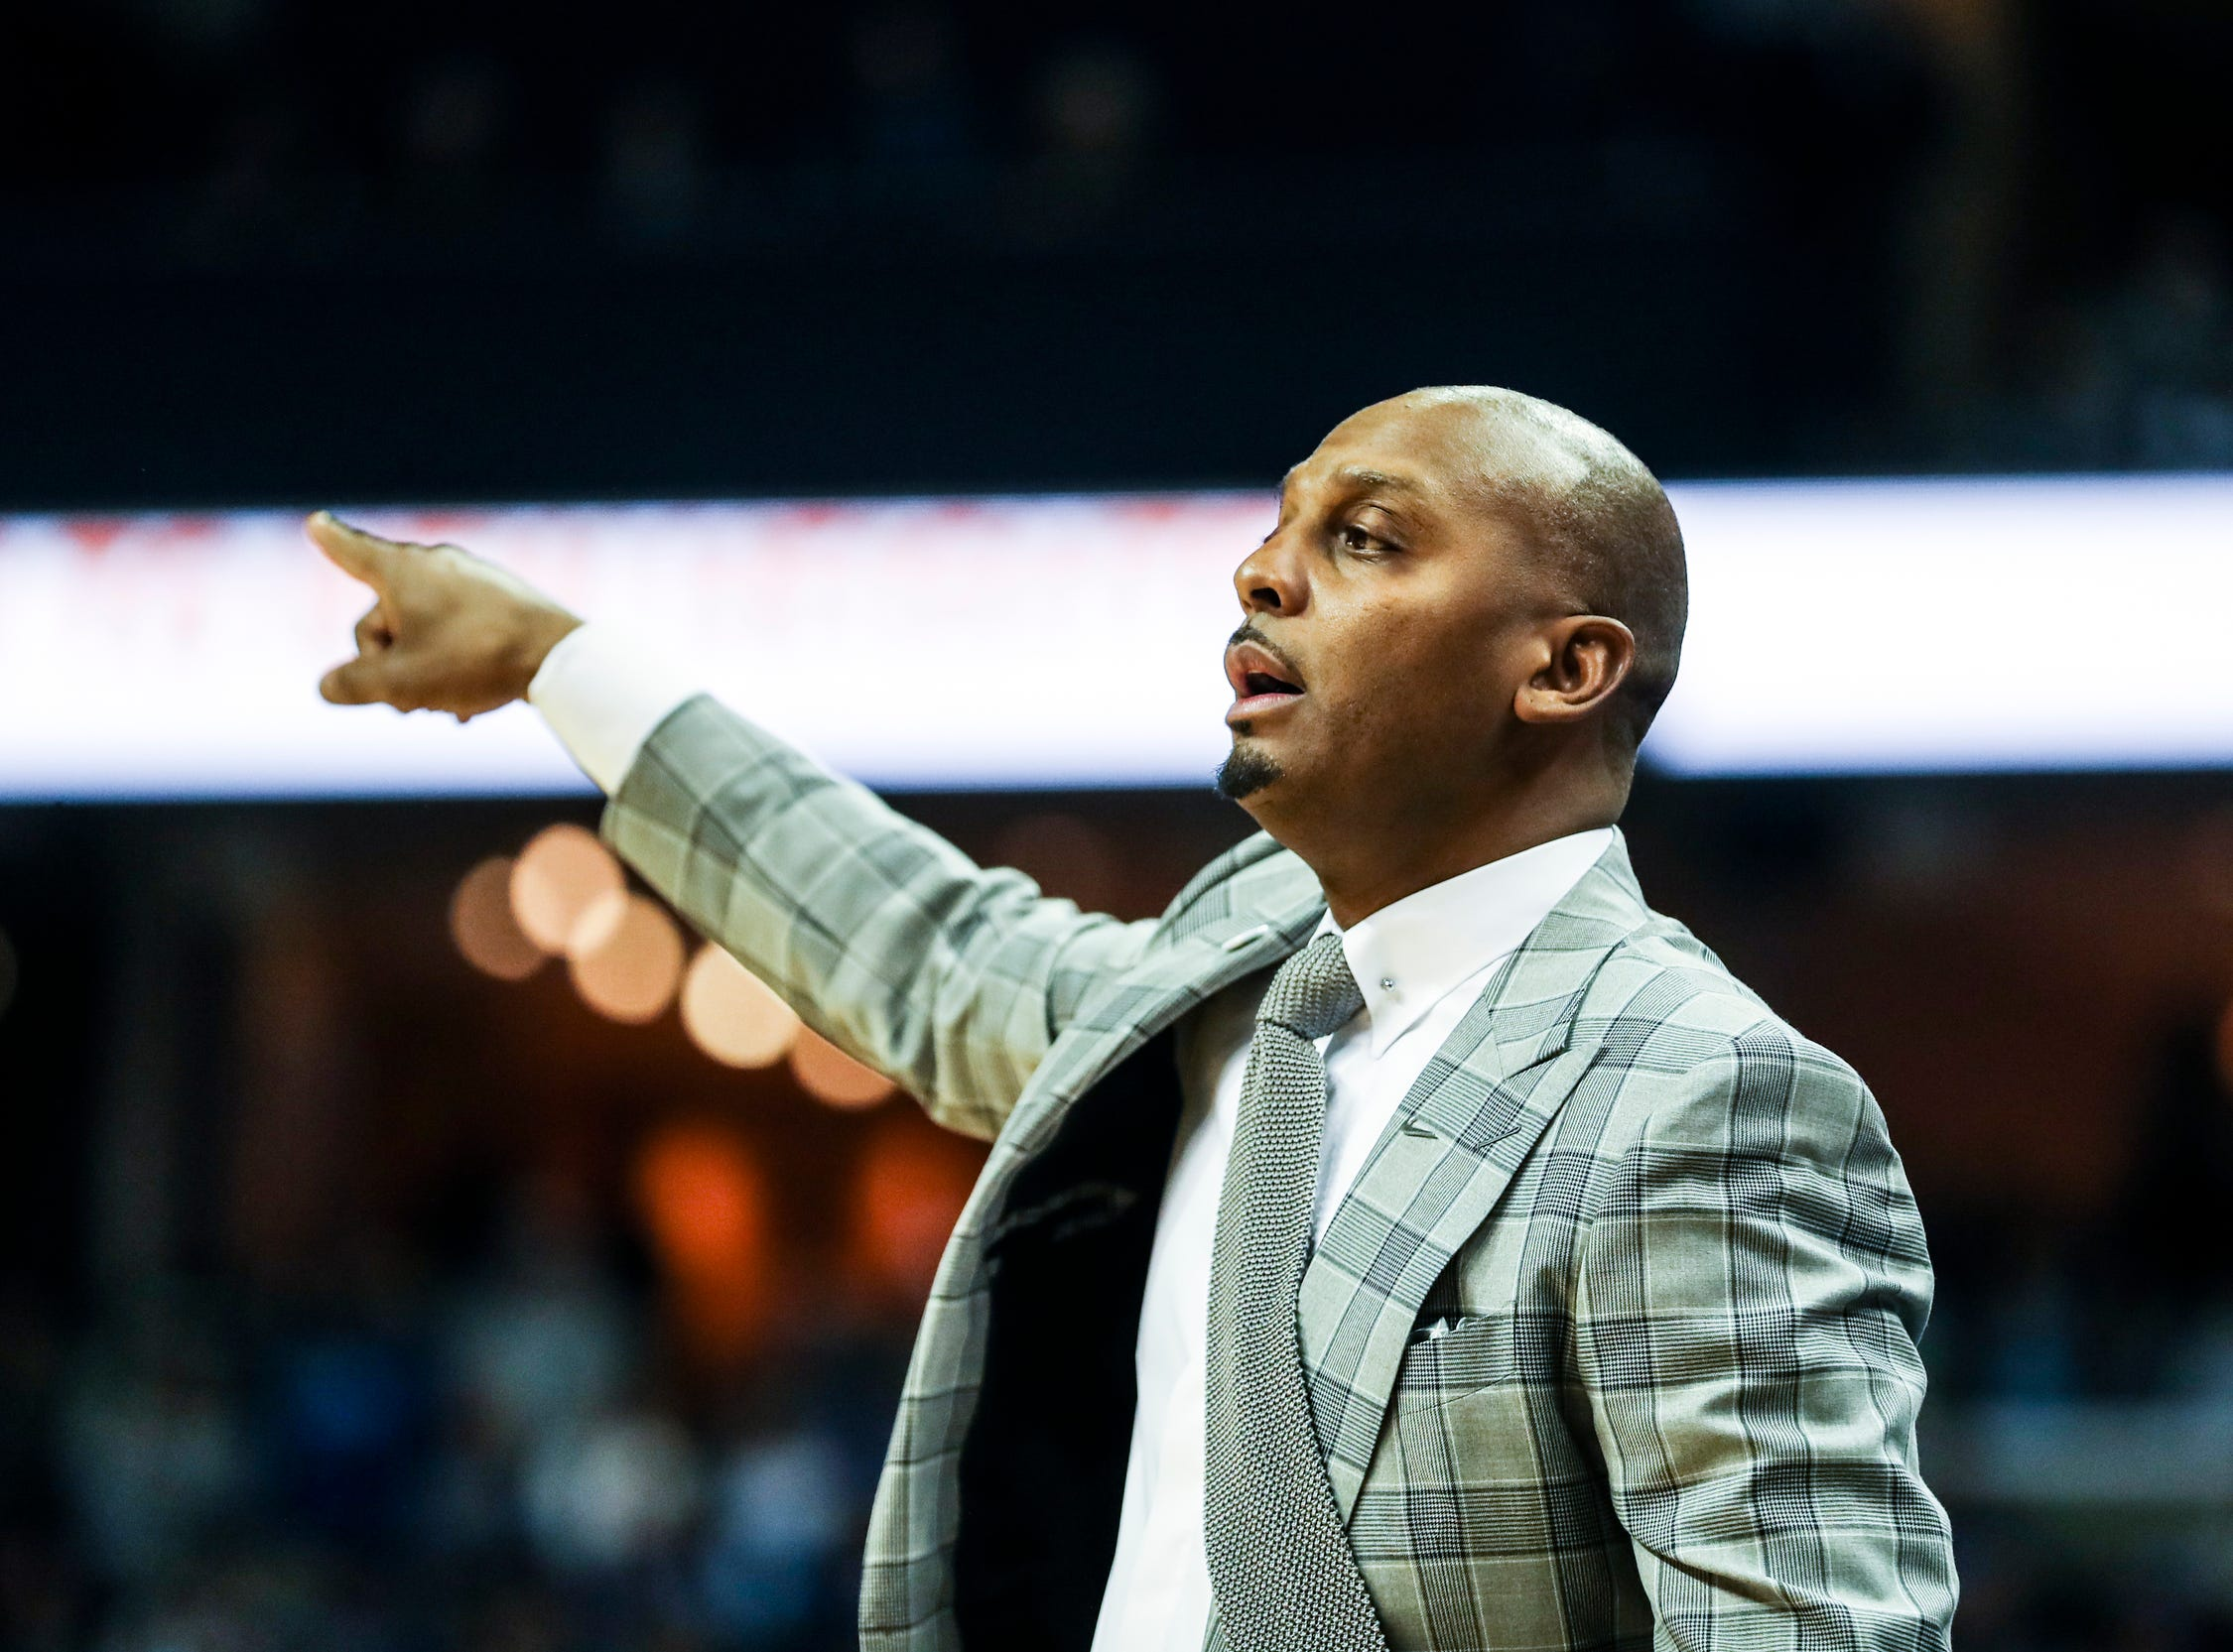 February 10, 2019 - Memphis' head coach, Penny Hardaway, communicates with his players during Sunday's game versus Connecticut at the FedExForum.